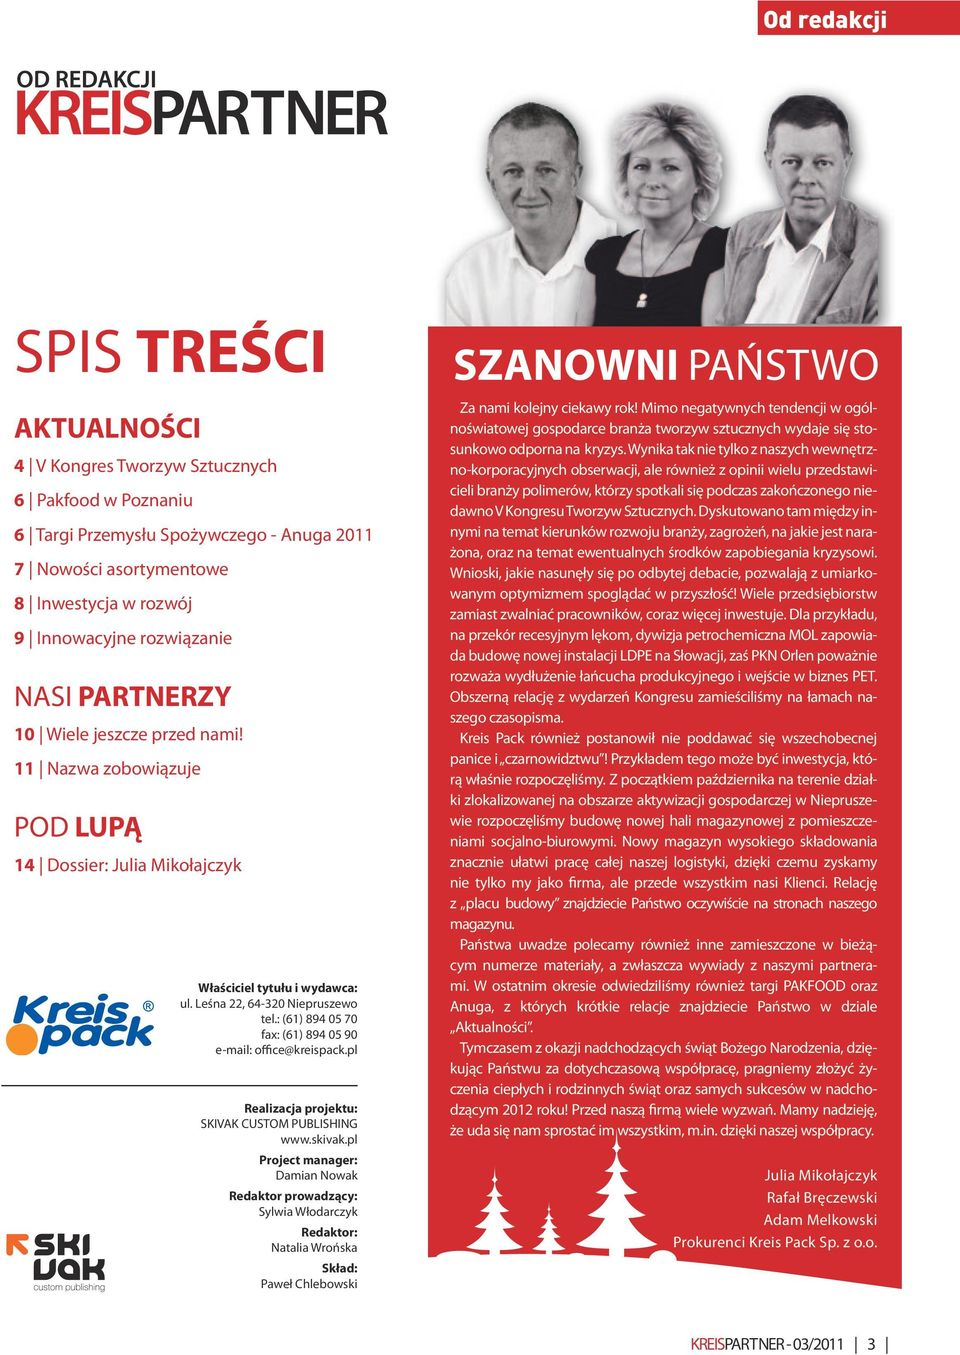 : (61) 894 05 70 fax: (61) 894 05 90 e-mail: office@kreispack.pl Realizacja projektu: SKIVAK CUSTOM PUBLISHING www.skivak.